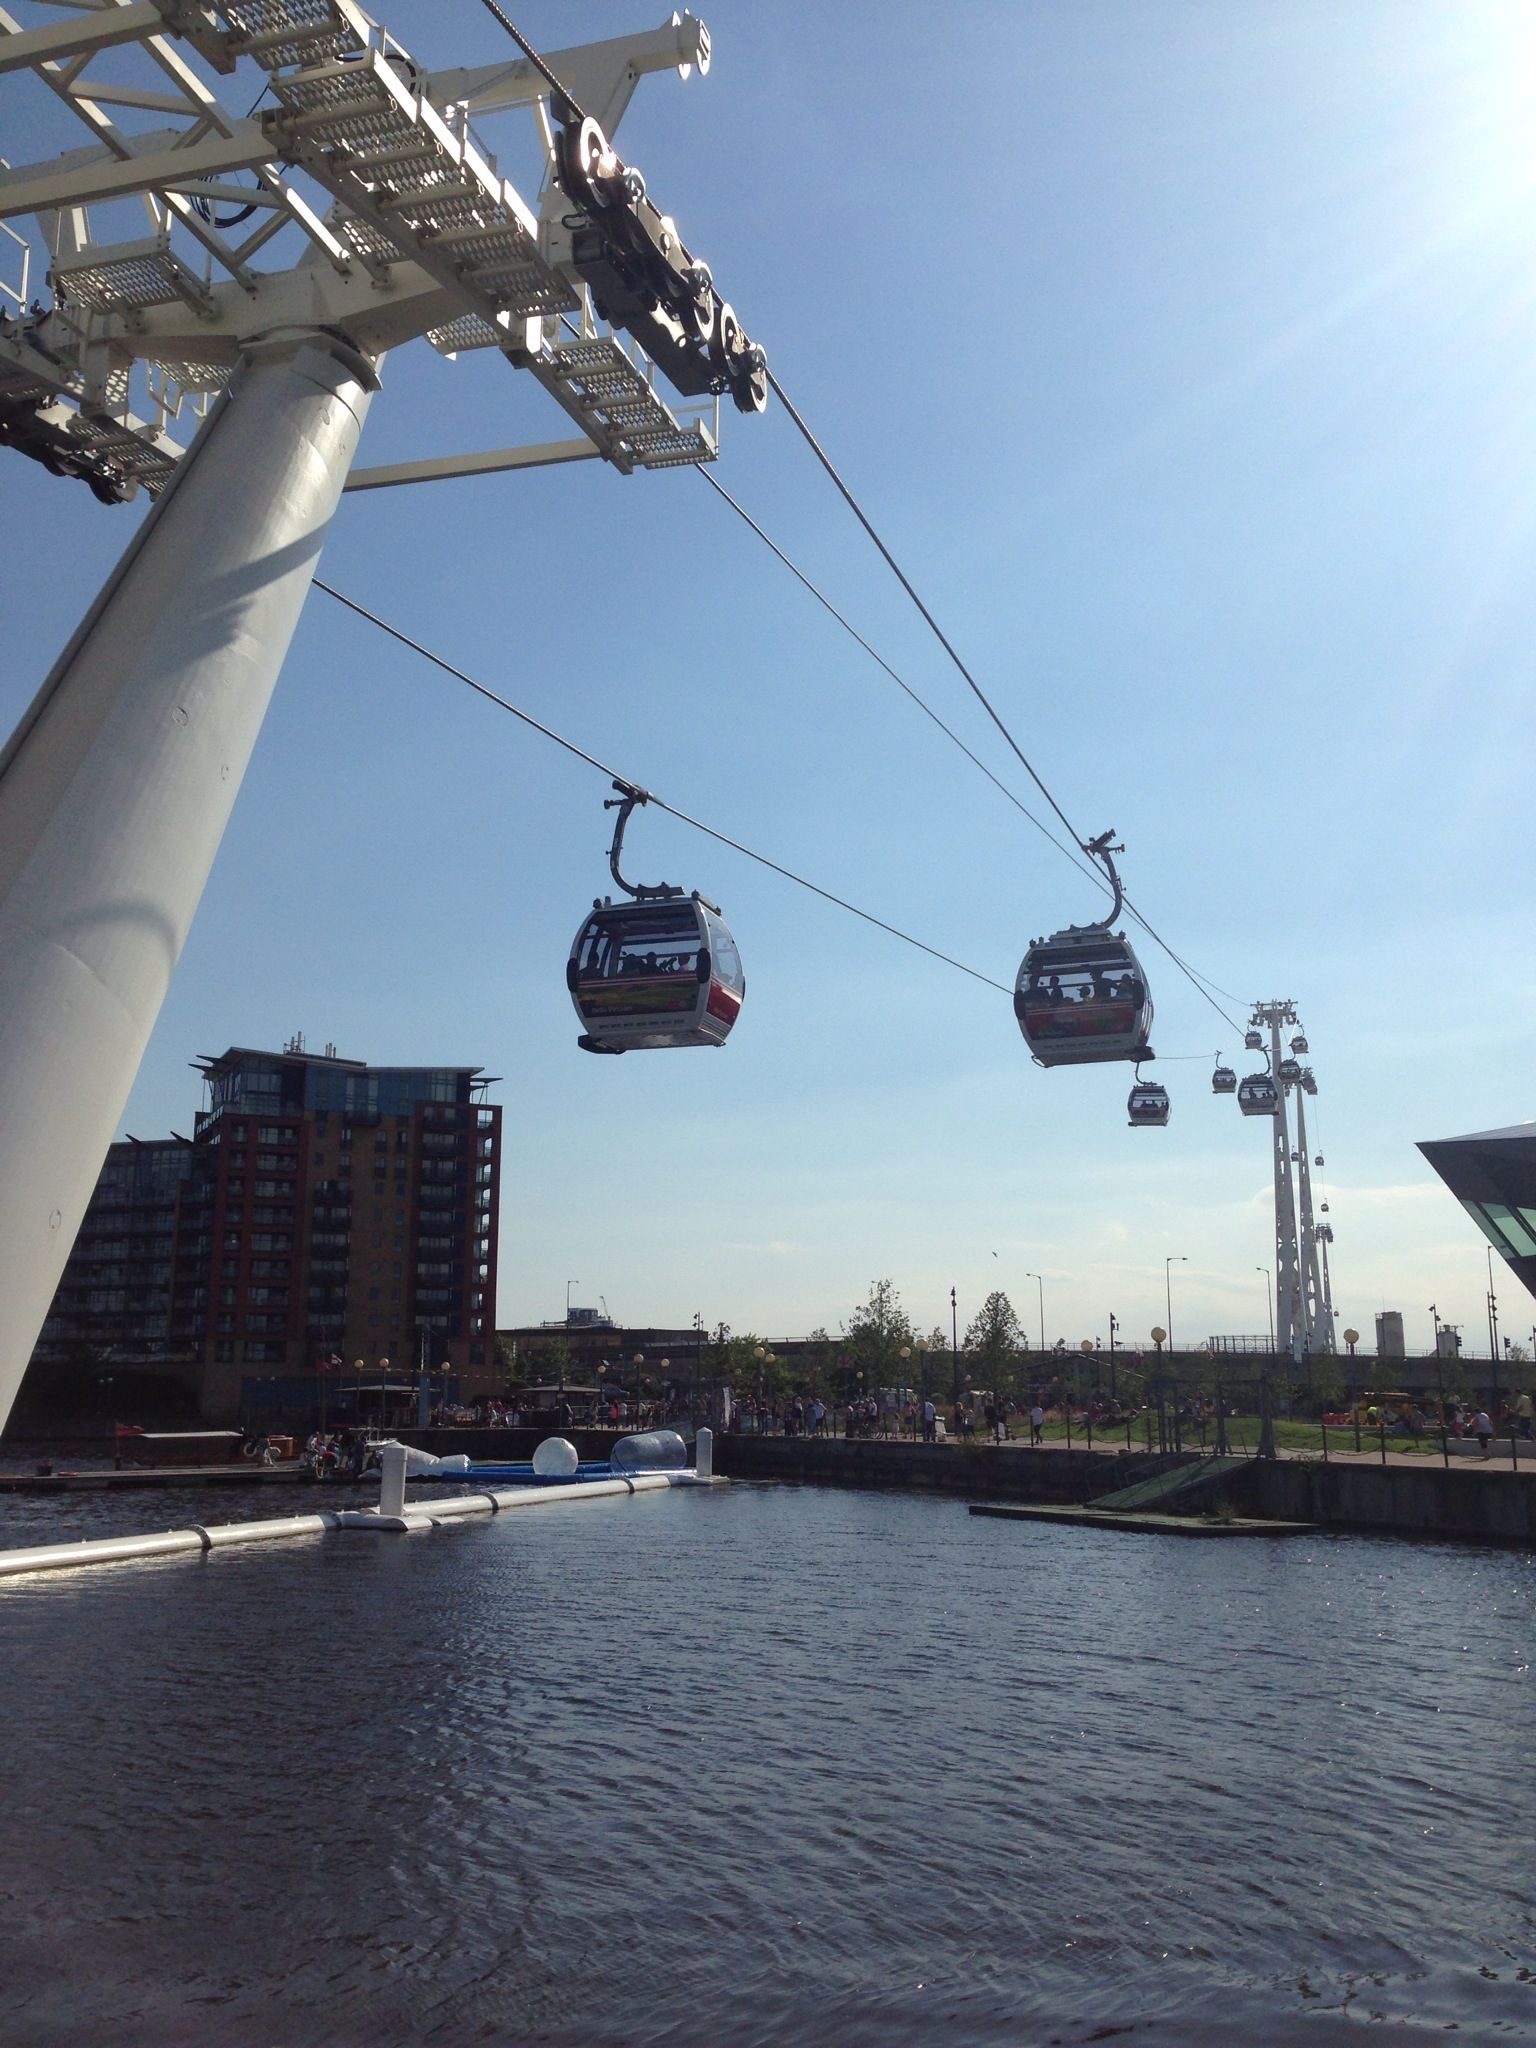 Emirates Air Line Cable Cars Favorite Places Cable Cars London